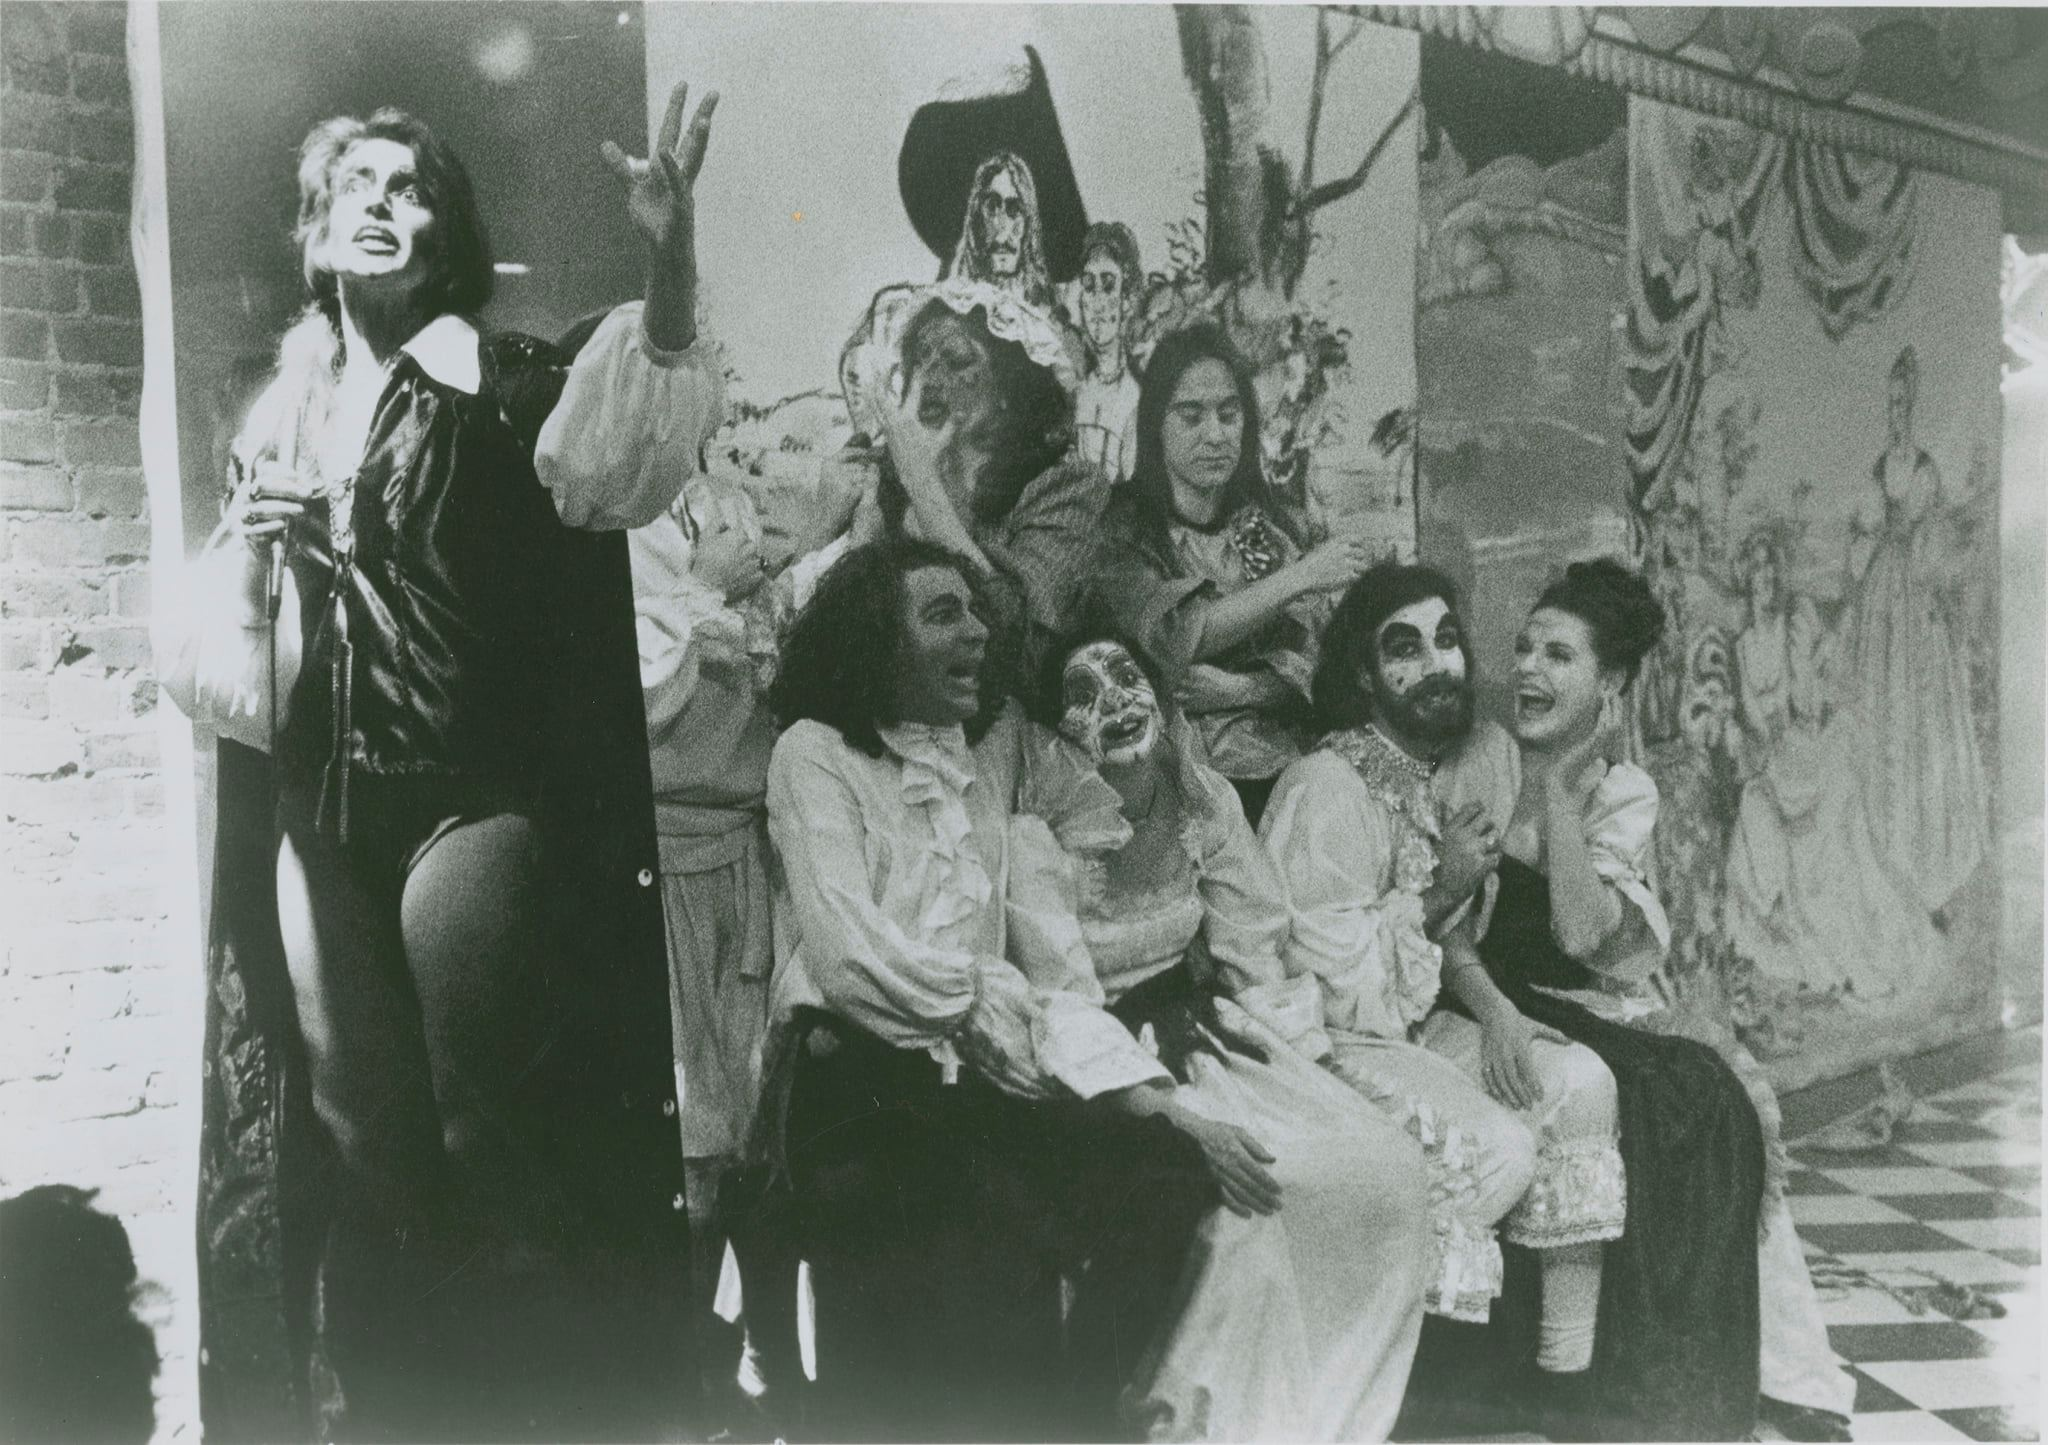 Seven cast members are in front of a mural, four are sitting and three are standing, all are wearing costumes and make-up